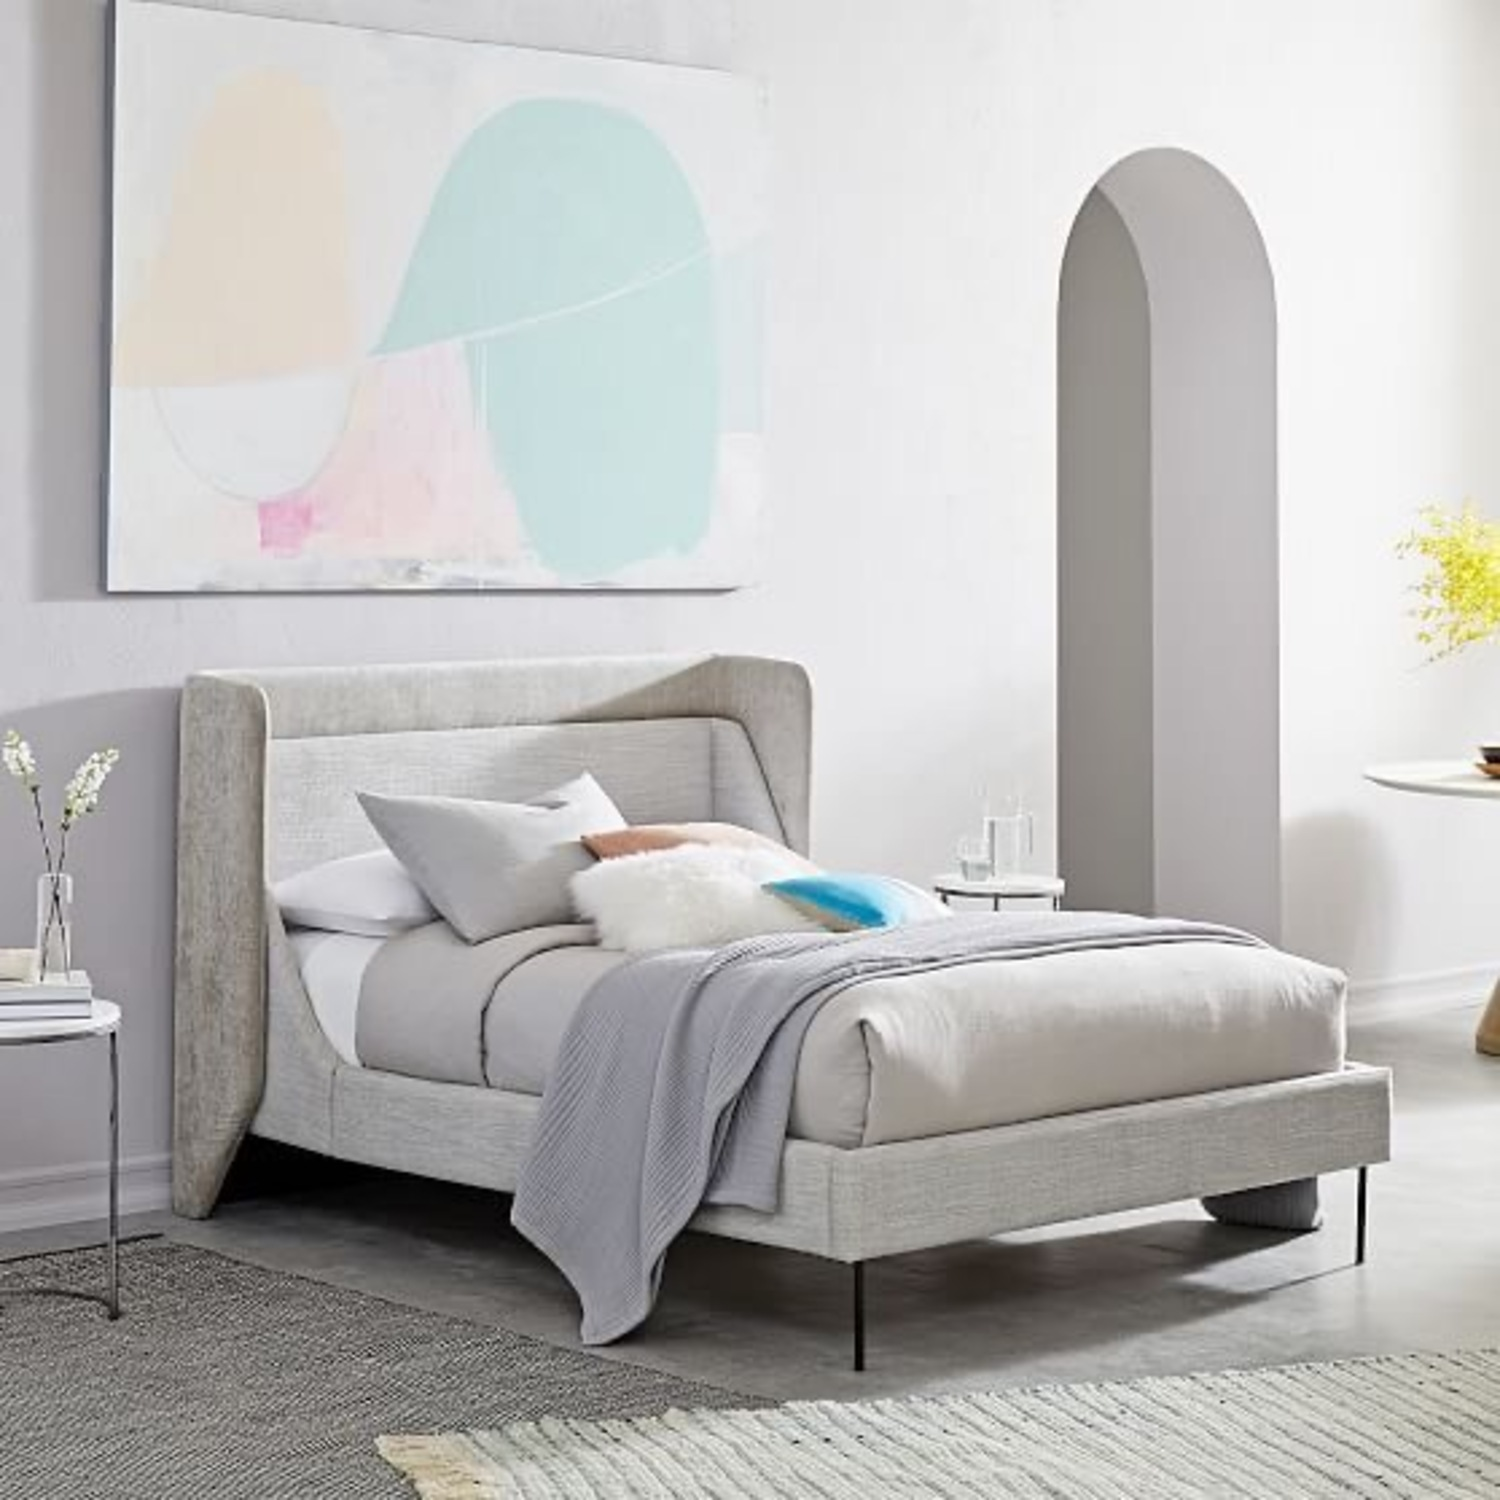 West Elm Thea Wing Bed (King Size) - image-0